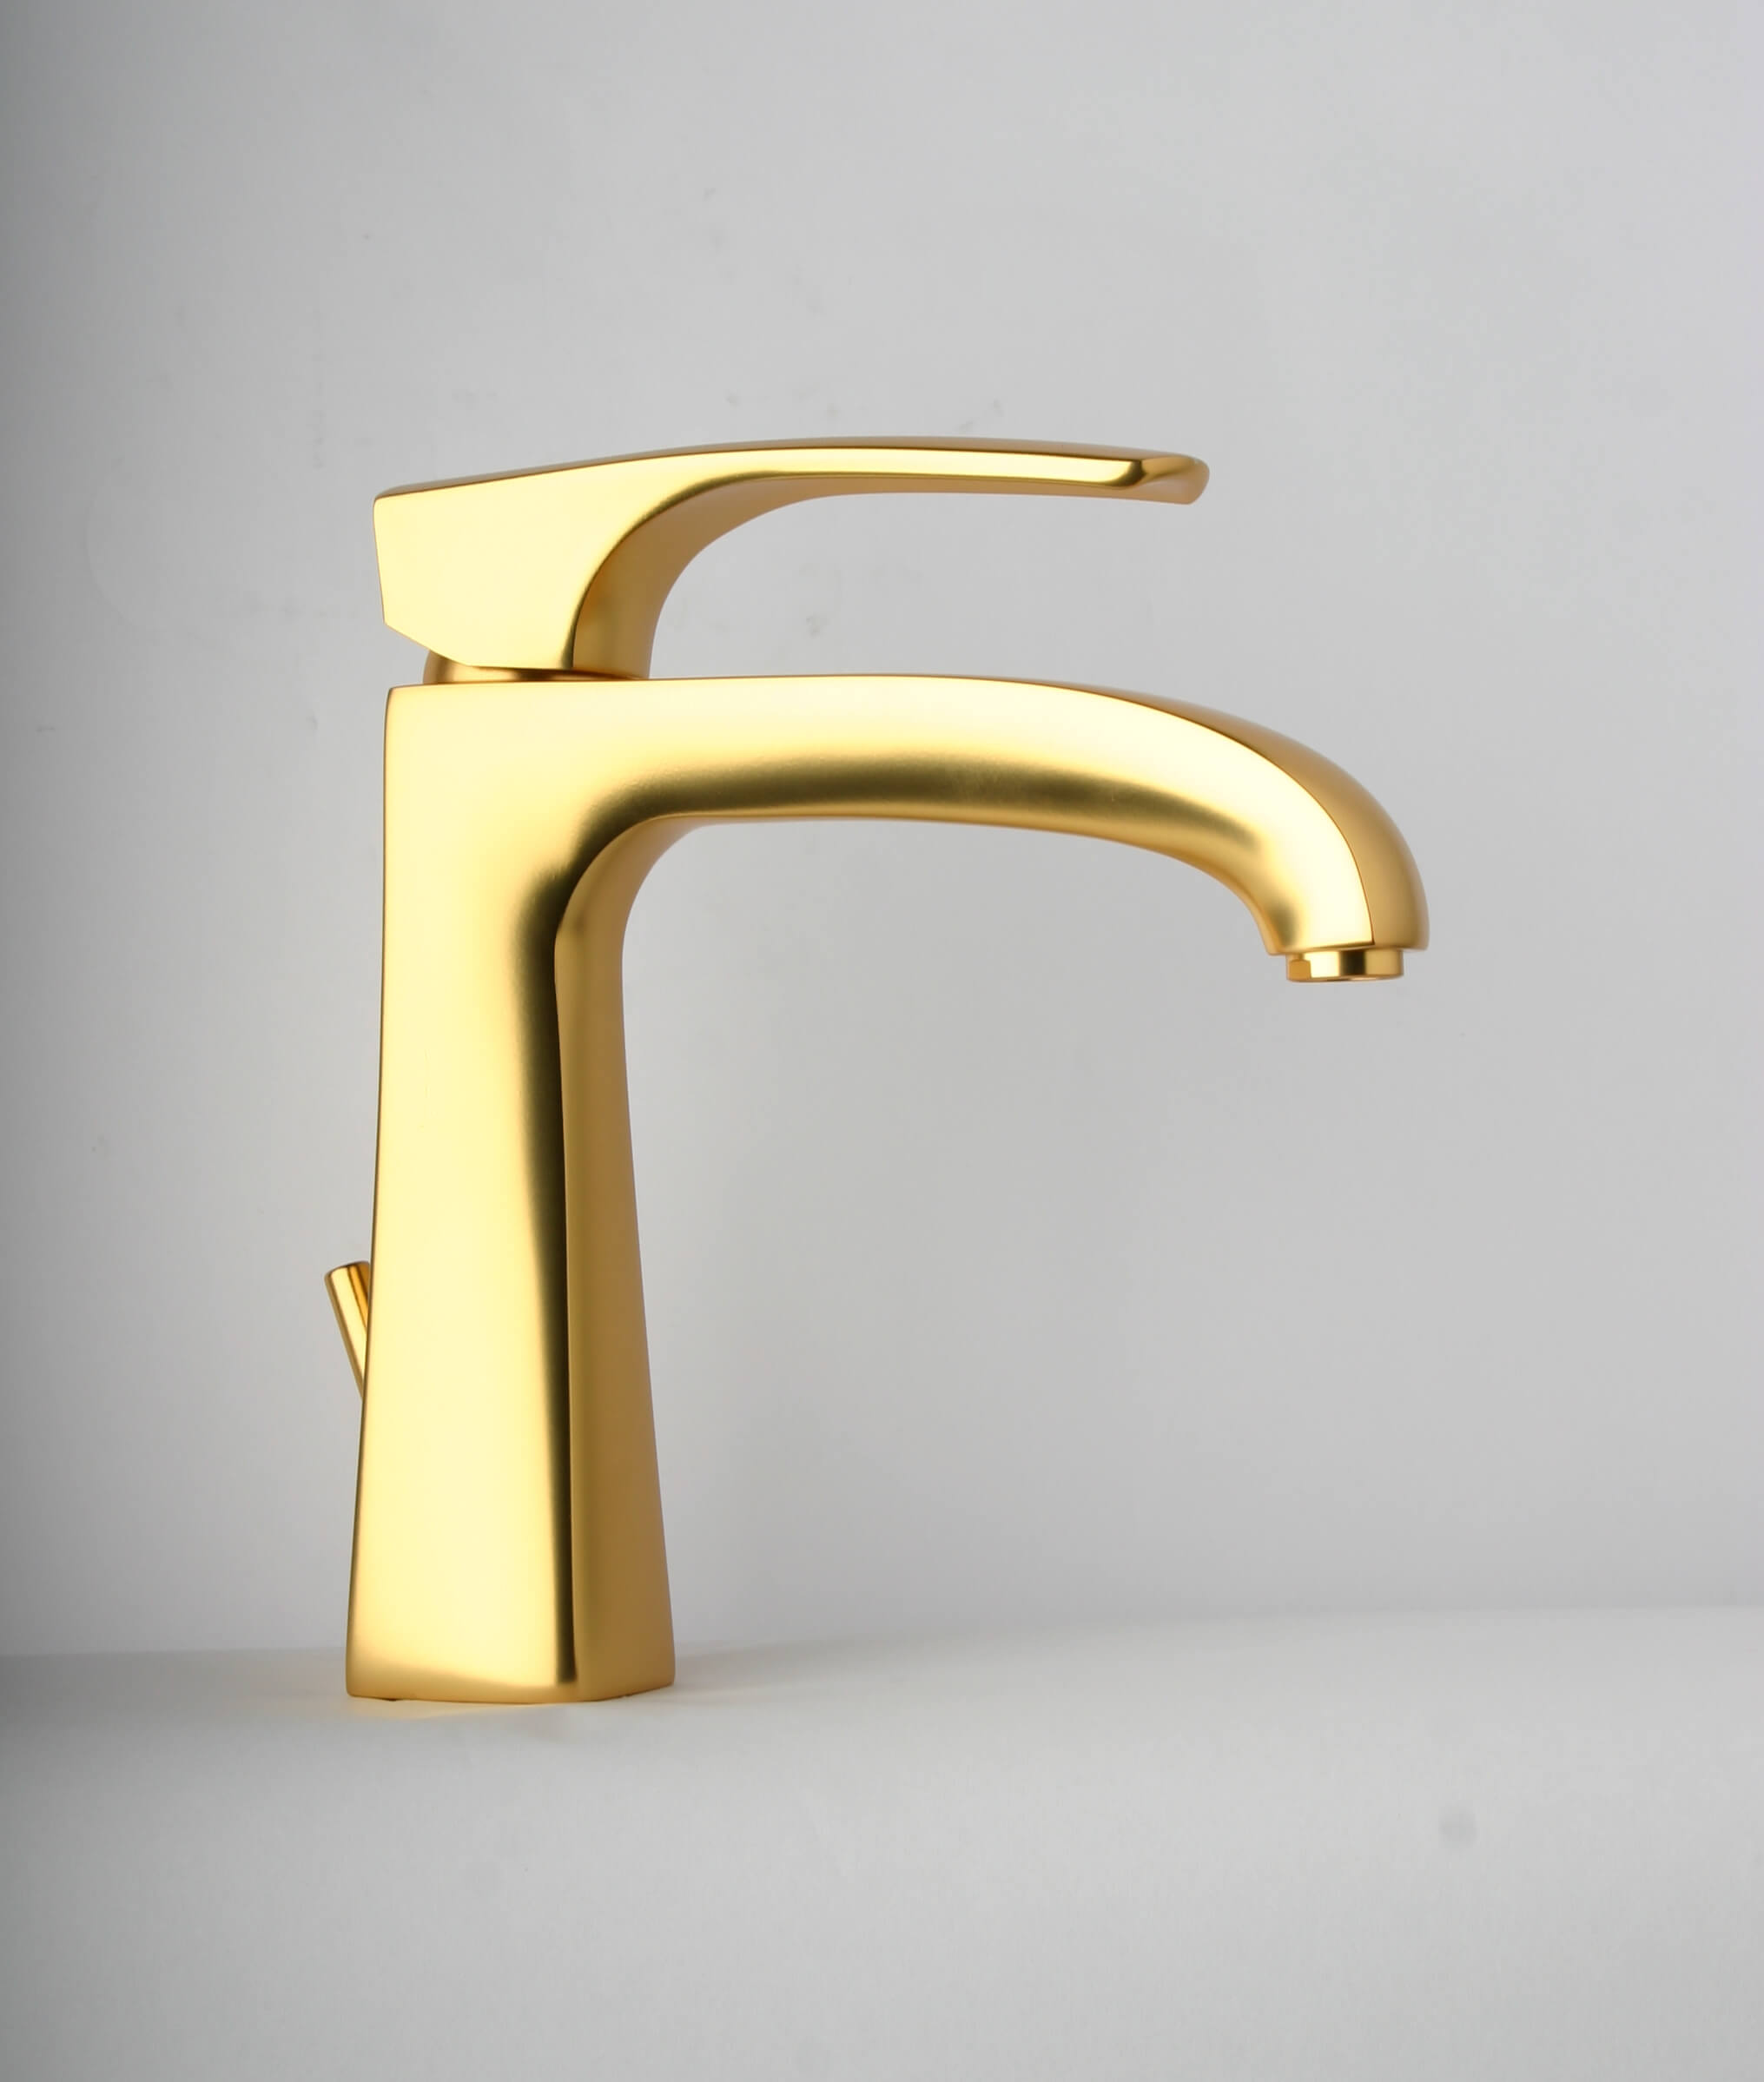 ideas bath kitchen curved signature bathroom hardware faucets gold faucet spout